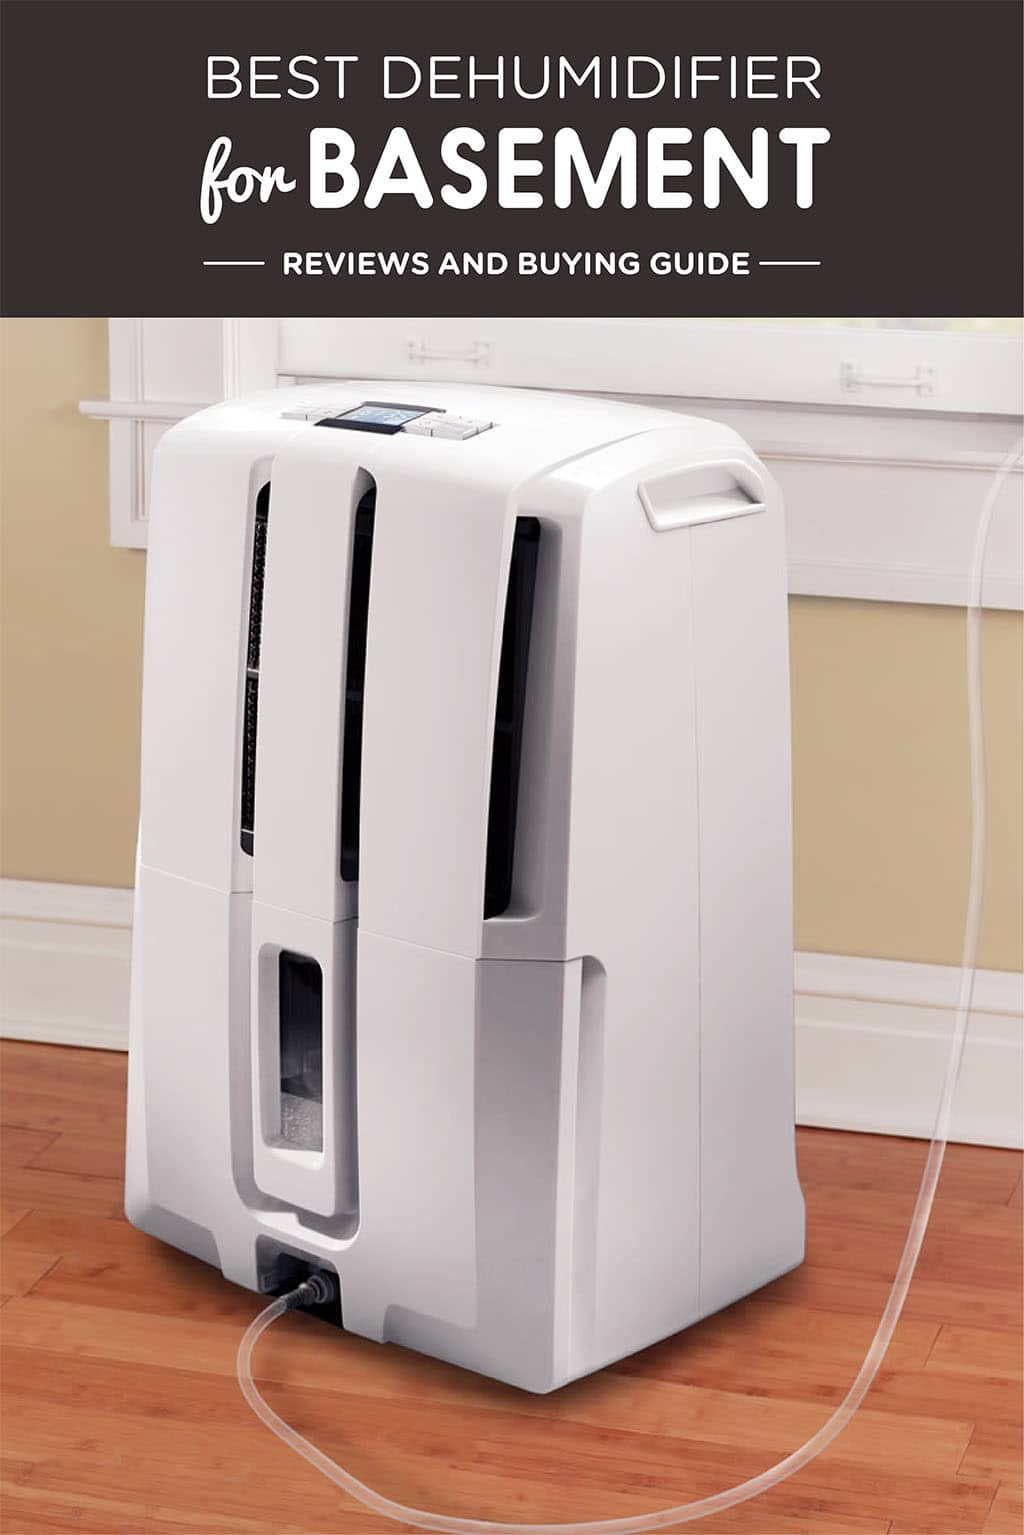 Awesome Find The Right Dehumidifier For Basement With 5 Features